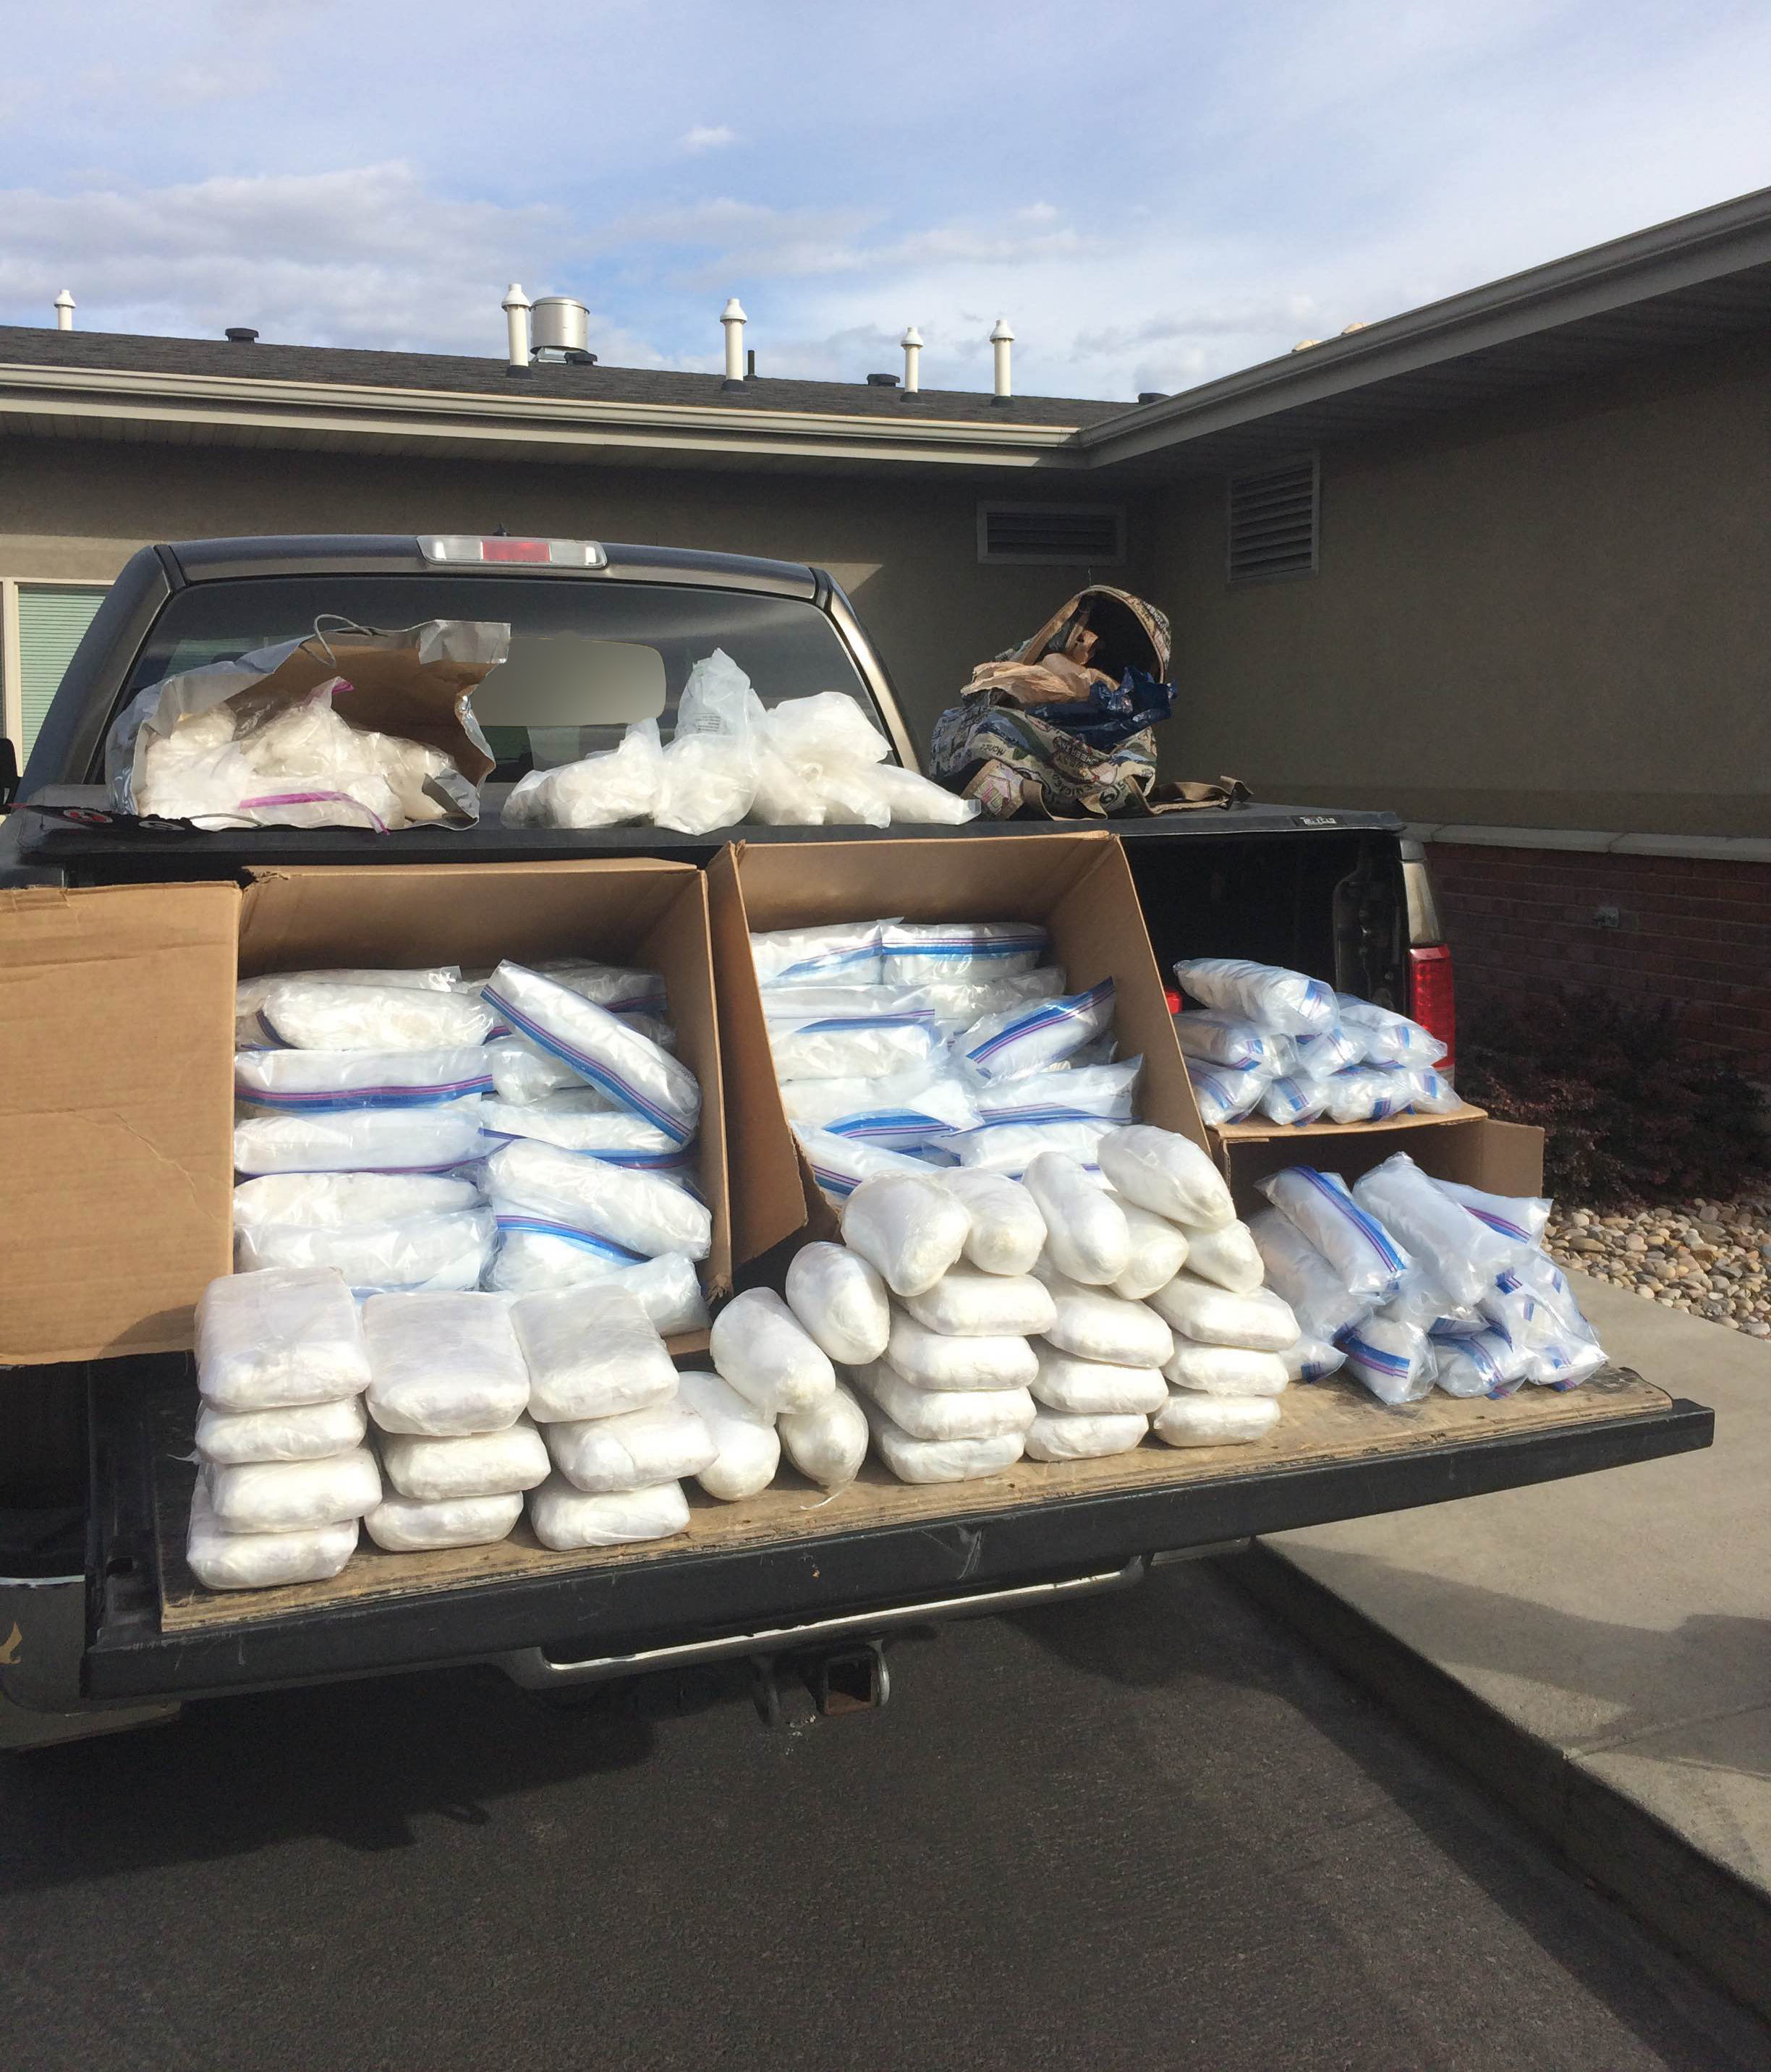 Utah Highway Patrol troopers seized 236 pounds of meth in record multimillion-dollar bust during a traffic stop in Springville, Utah, Oct. 10, 2016 | Photo courtesy of Utah Highway Patrol, St. George News